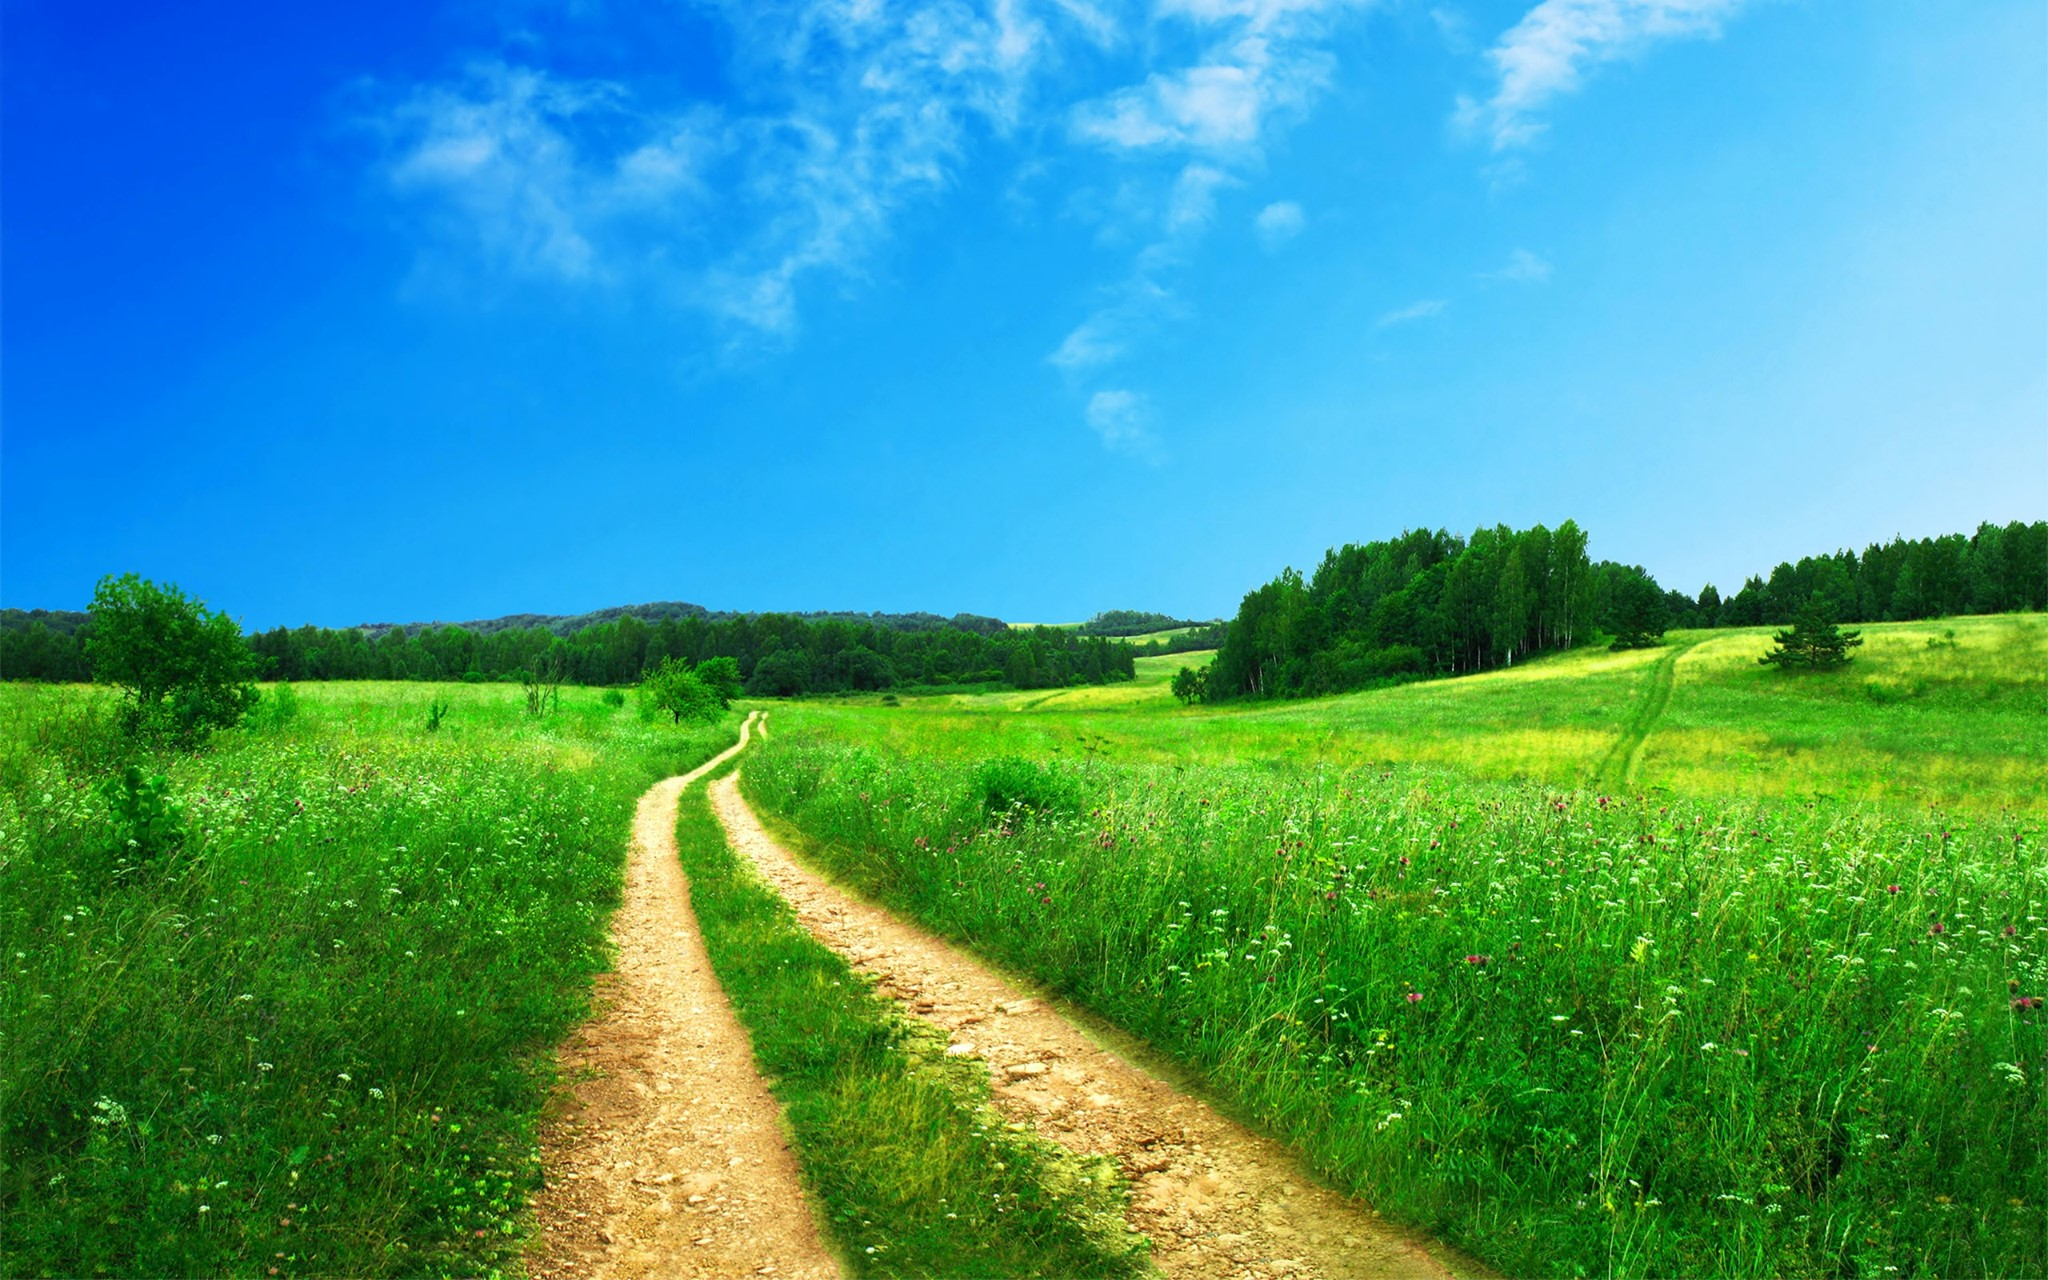 The journey ahead with Natural Allergy Therapies